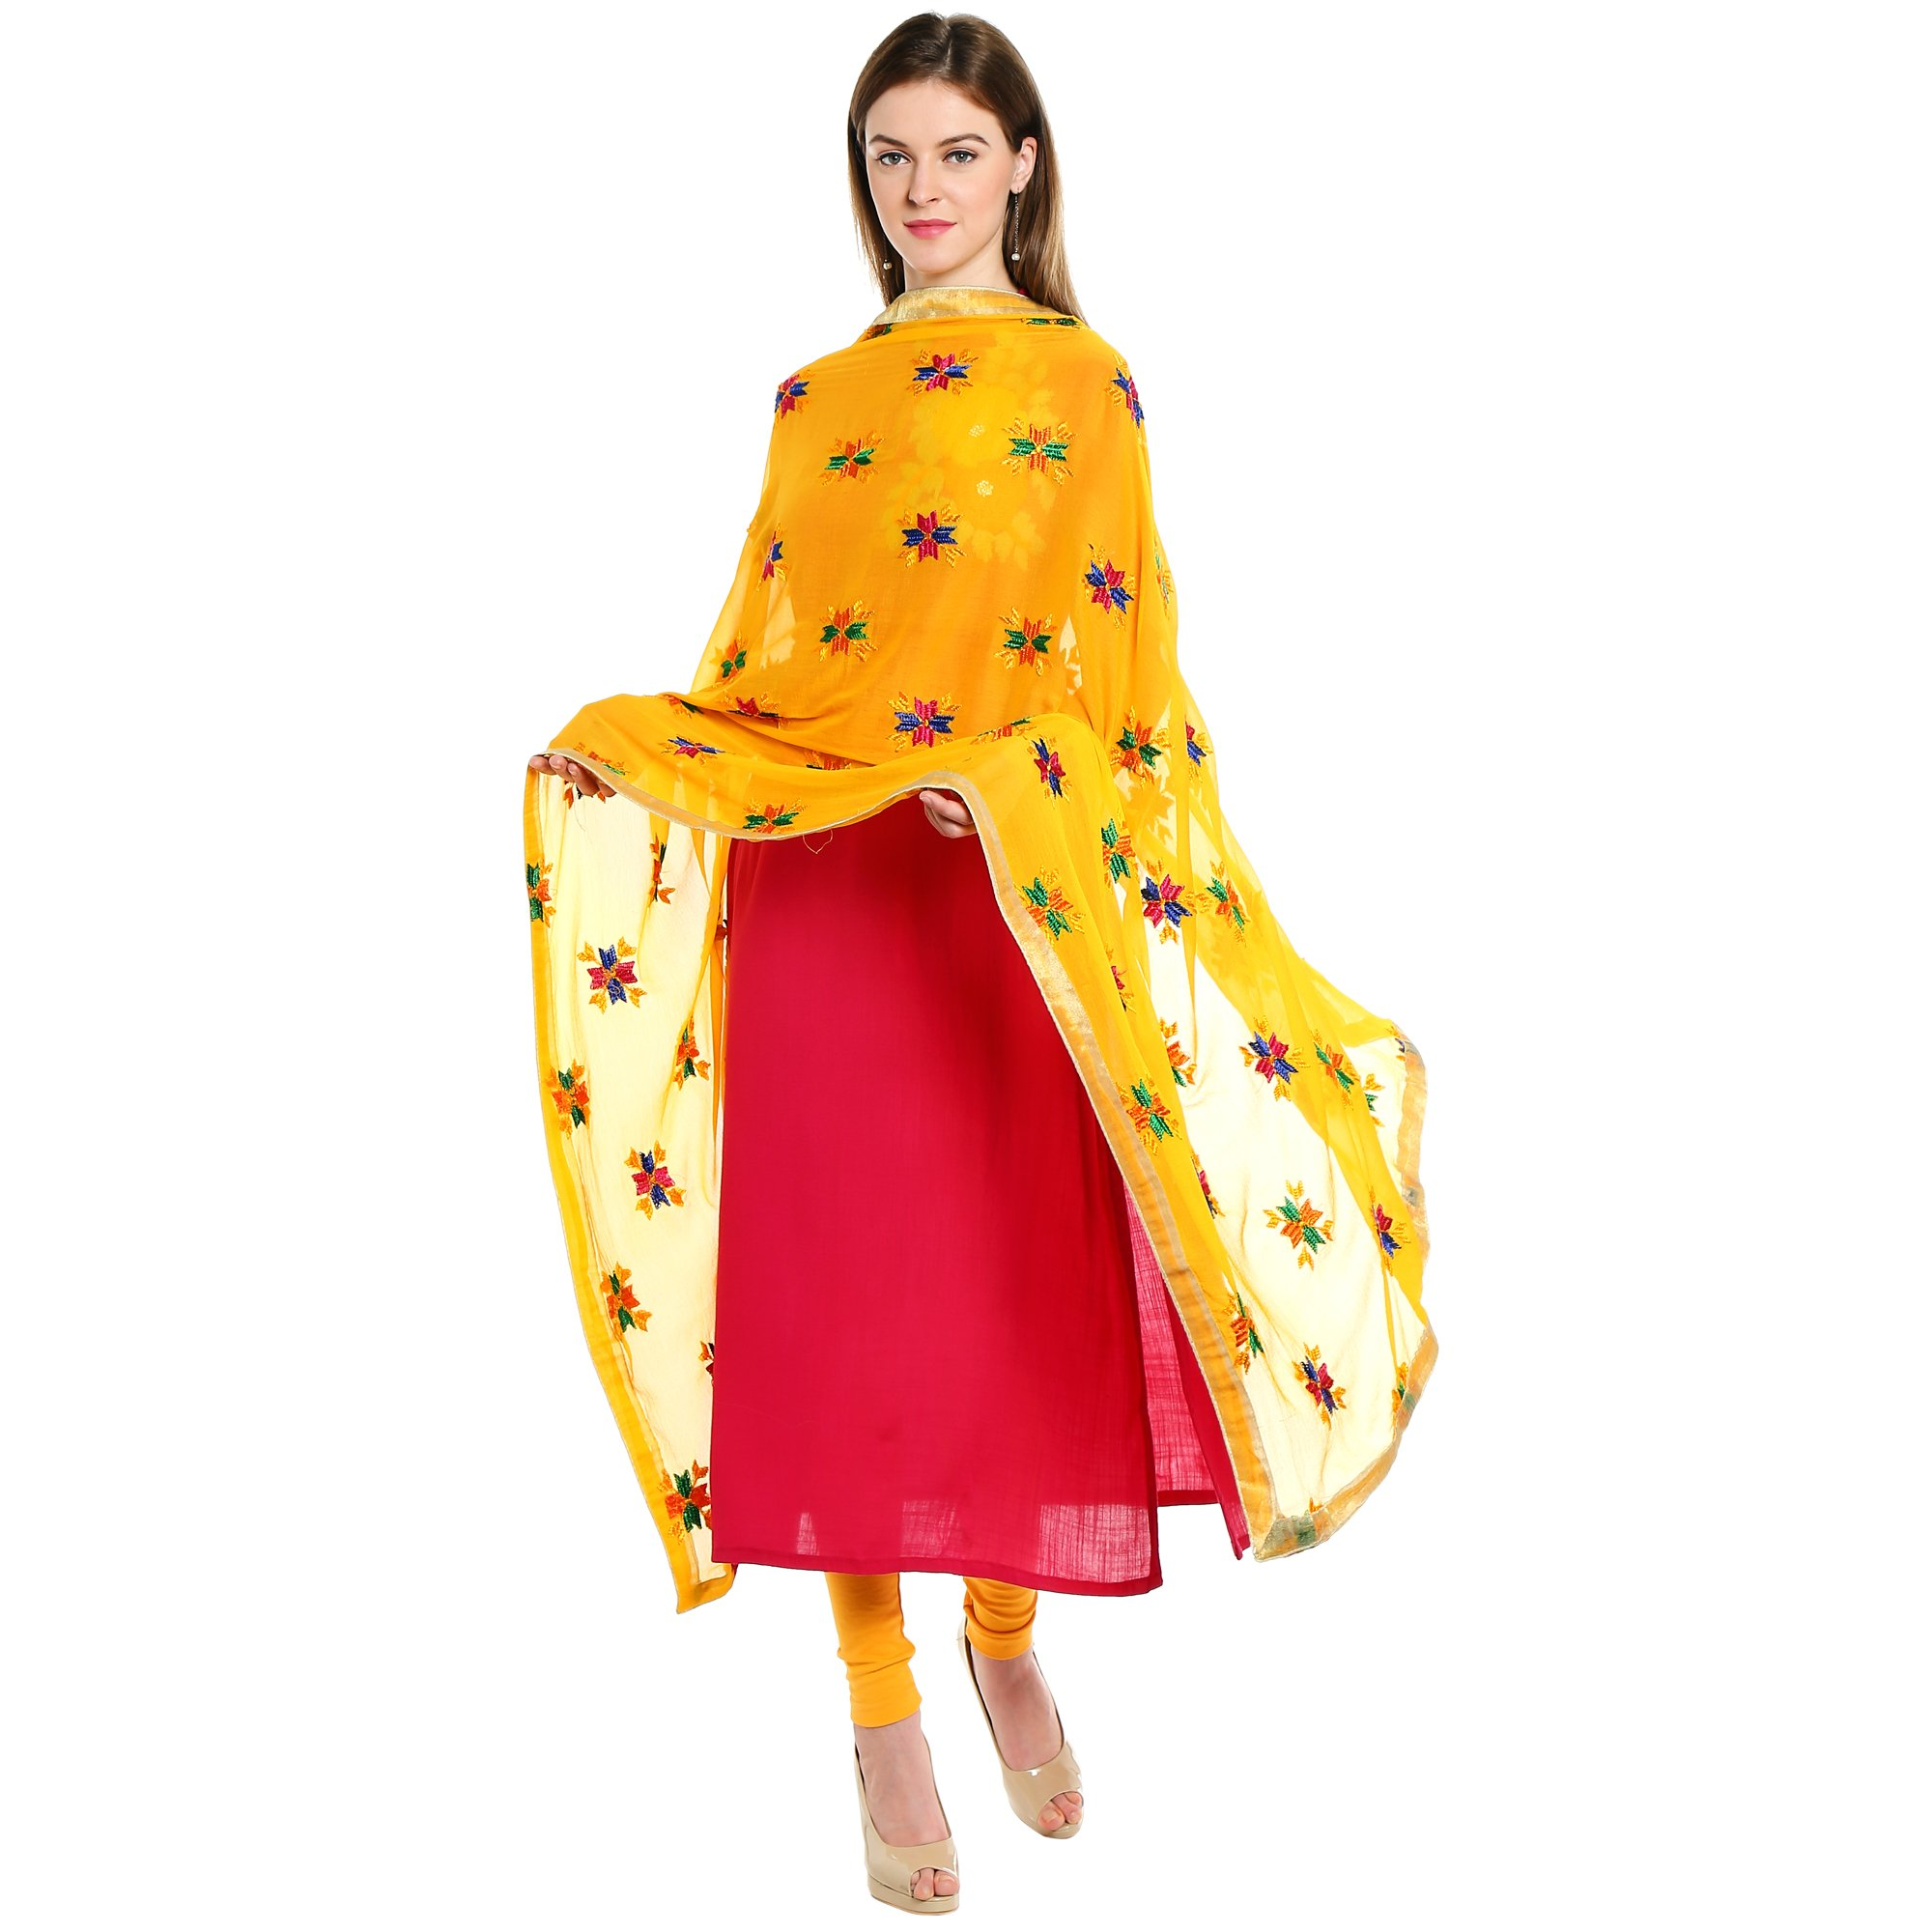 Dupatta Bazaar Indian Phulkari Embroidered Chiffon Dupatta Stole for Women/ Designer Ethnic Lace Border Scarf Shawl/Chunni,Yellow